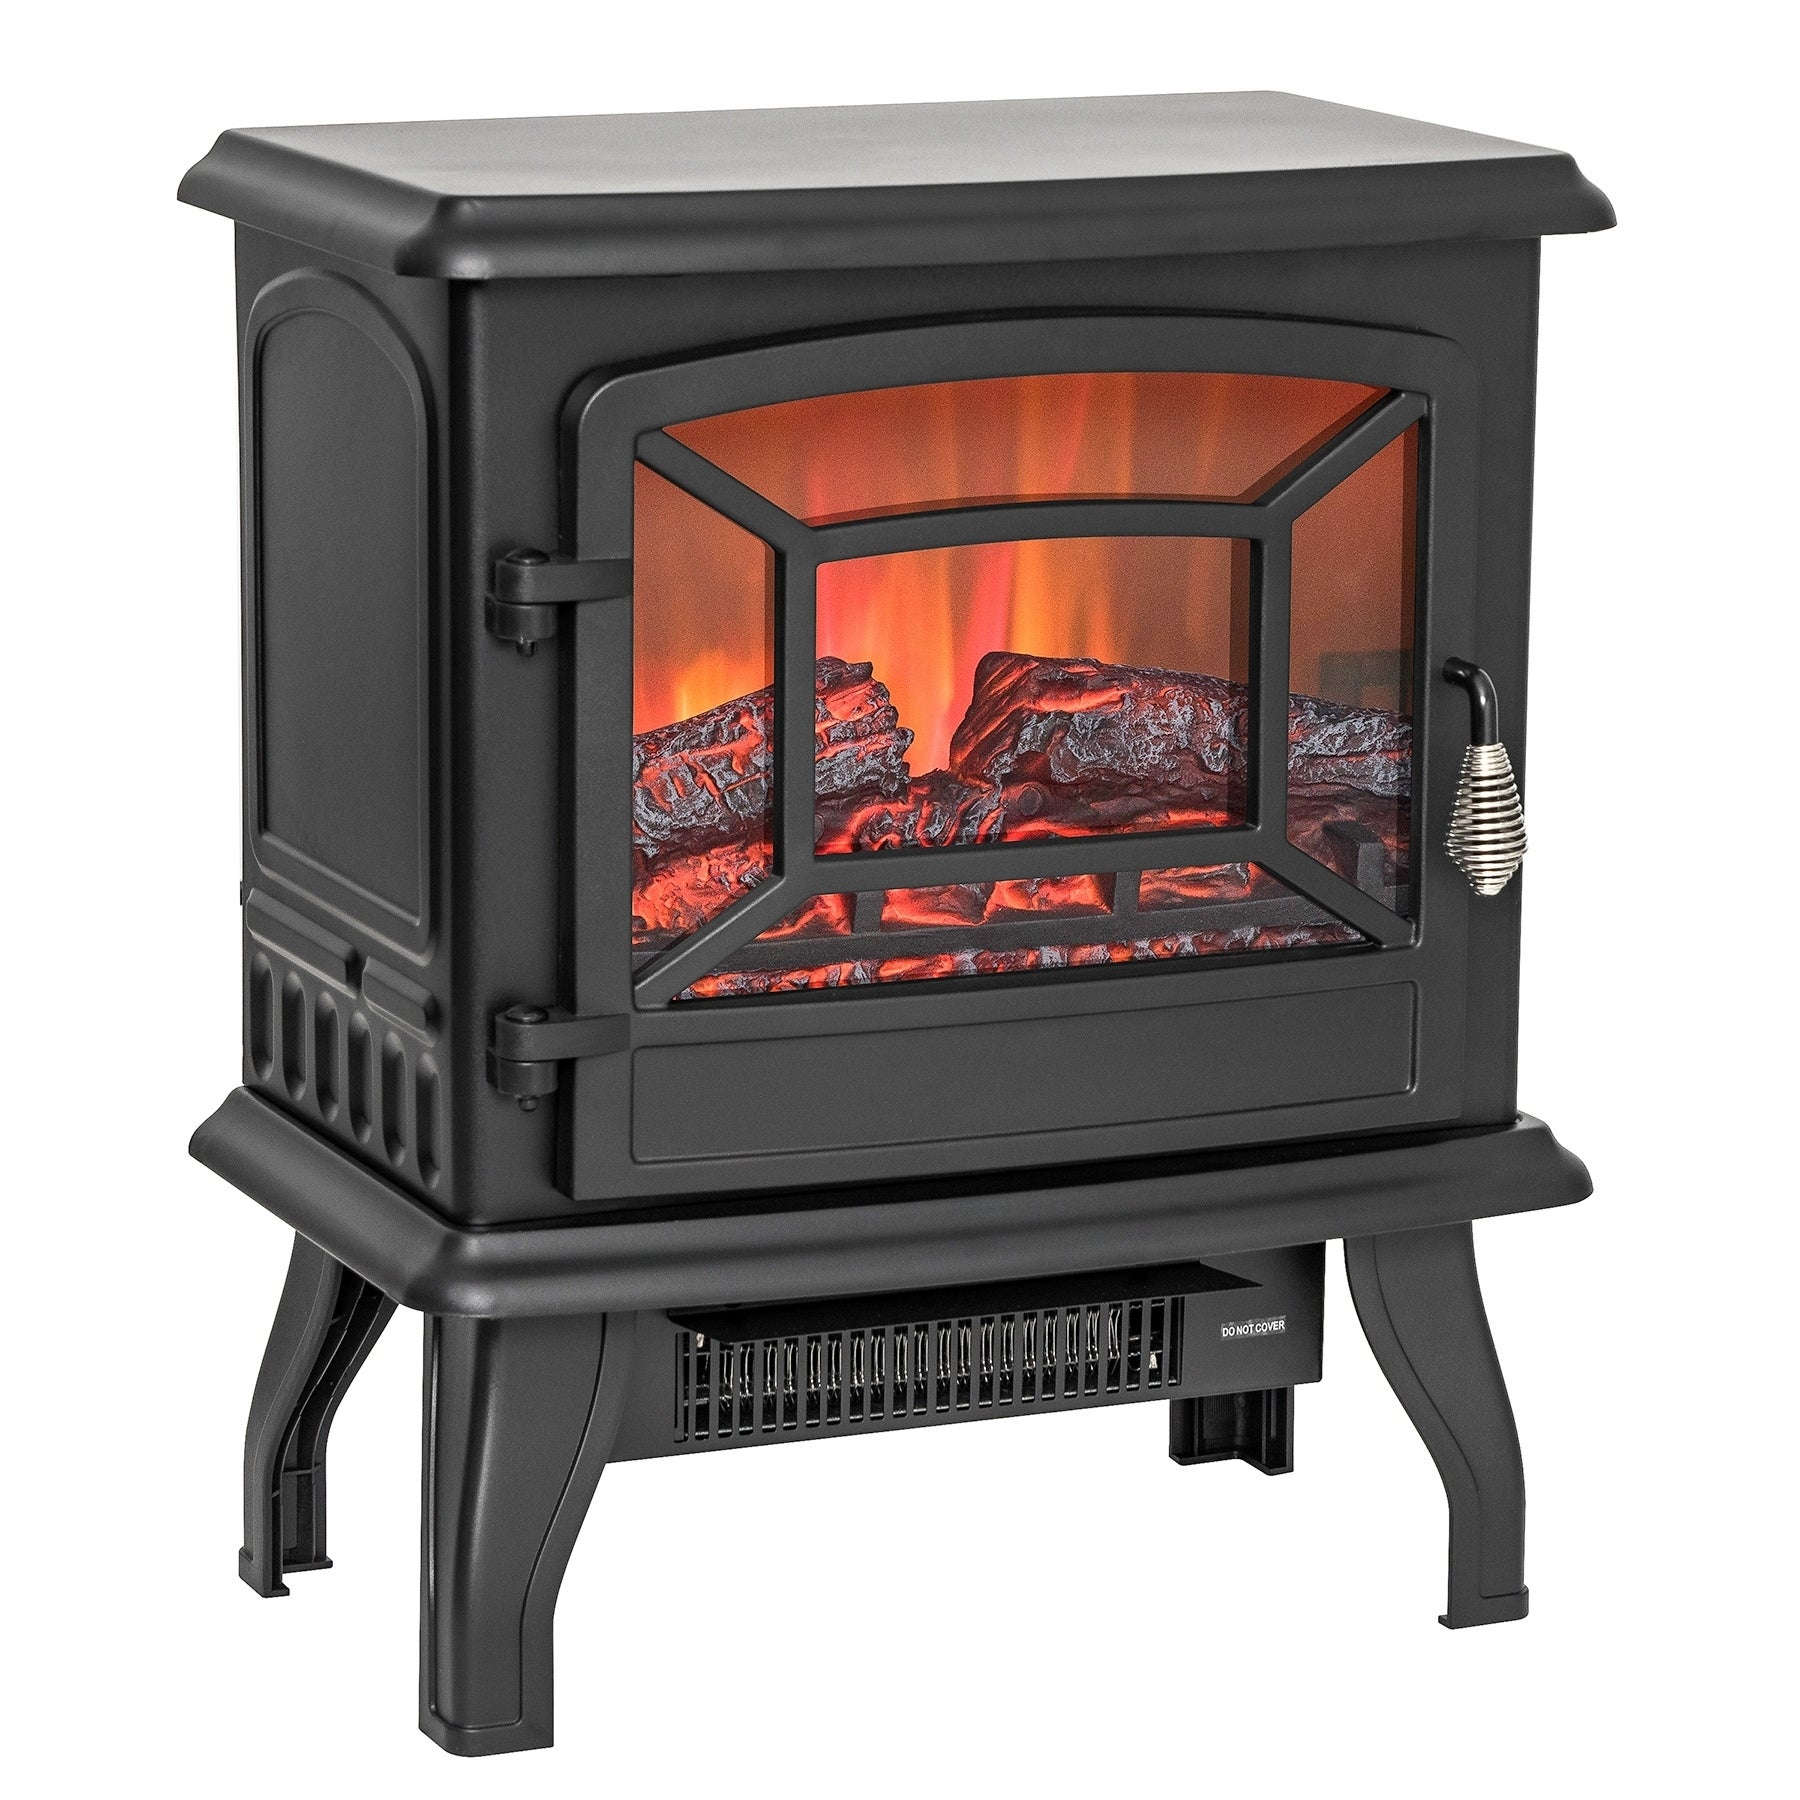 AKDY FP0078 17 Freestanding Portable Electric Fireplace 3D Flames Firebox w Logs Heater e1b5293b 5219 4064 8c41 903b6a